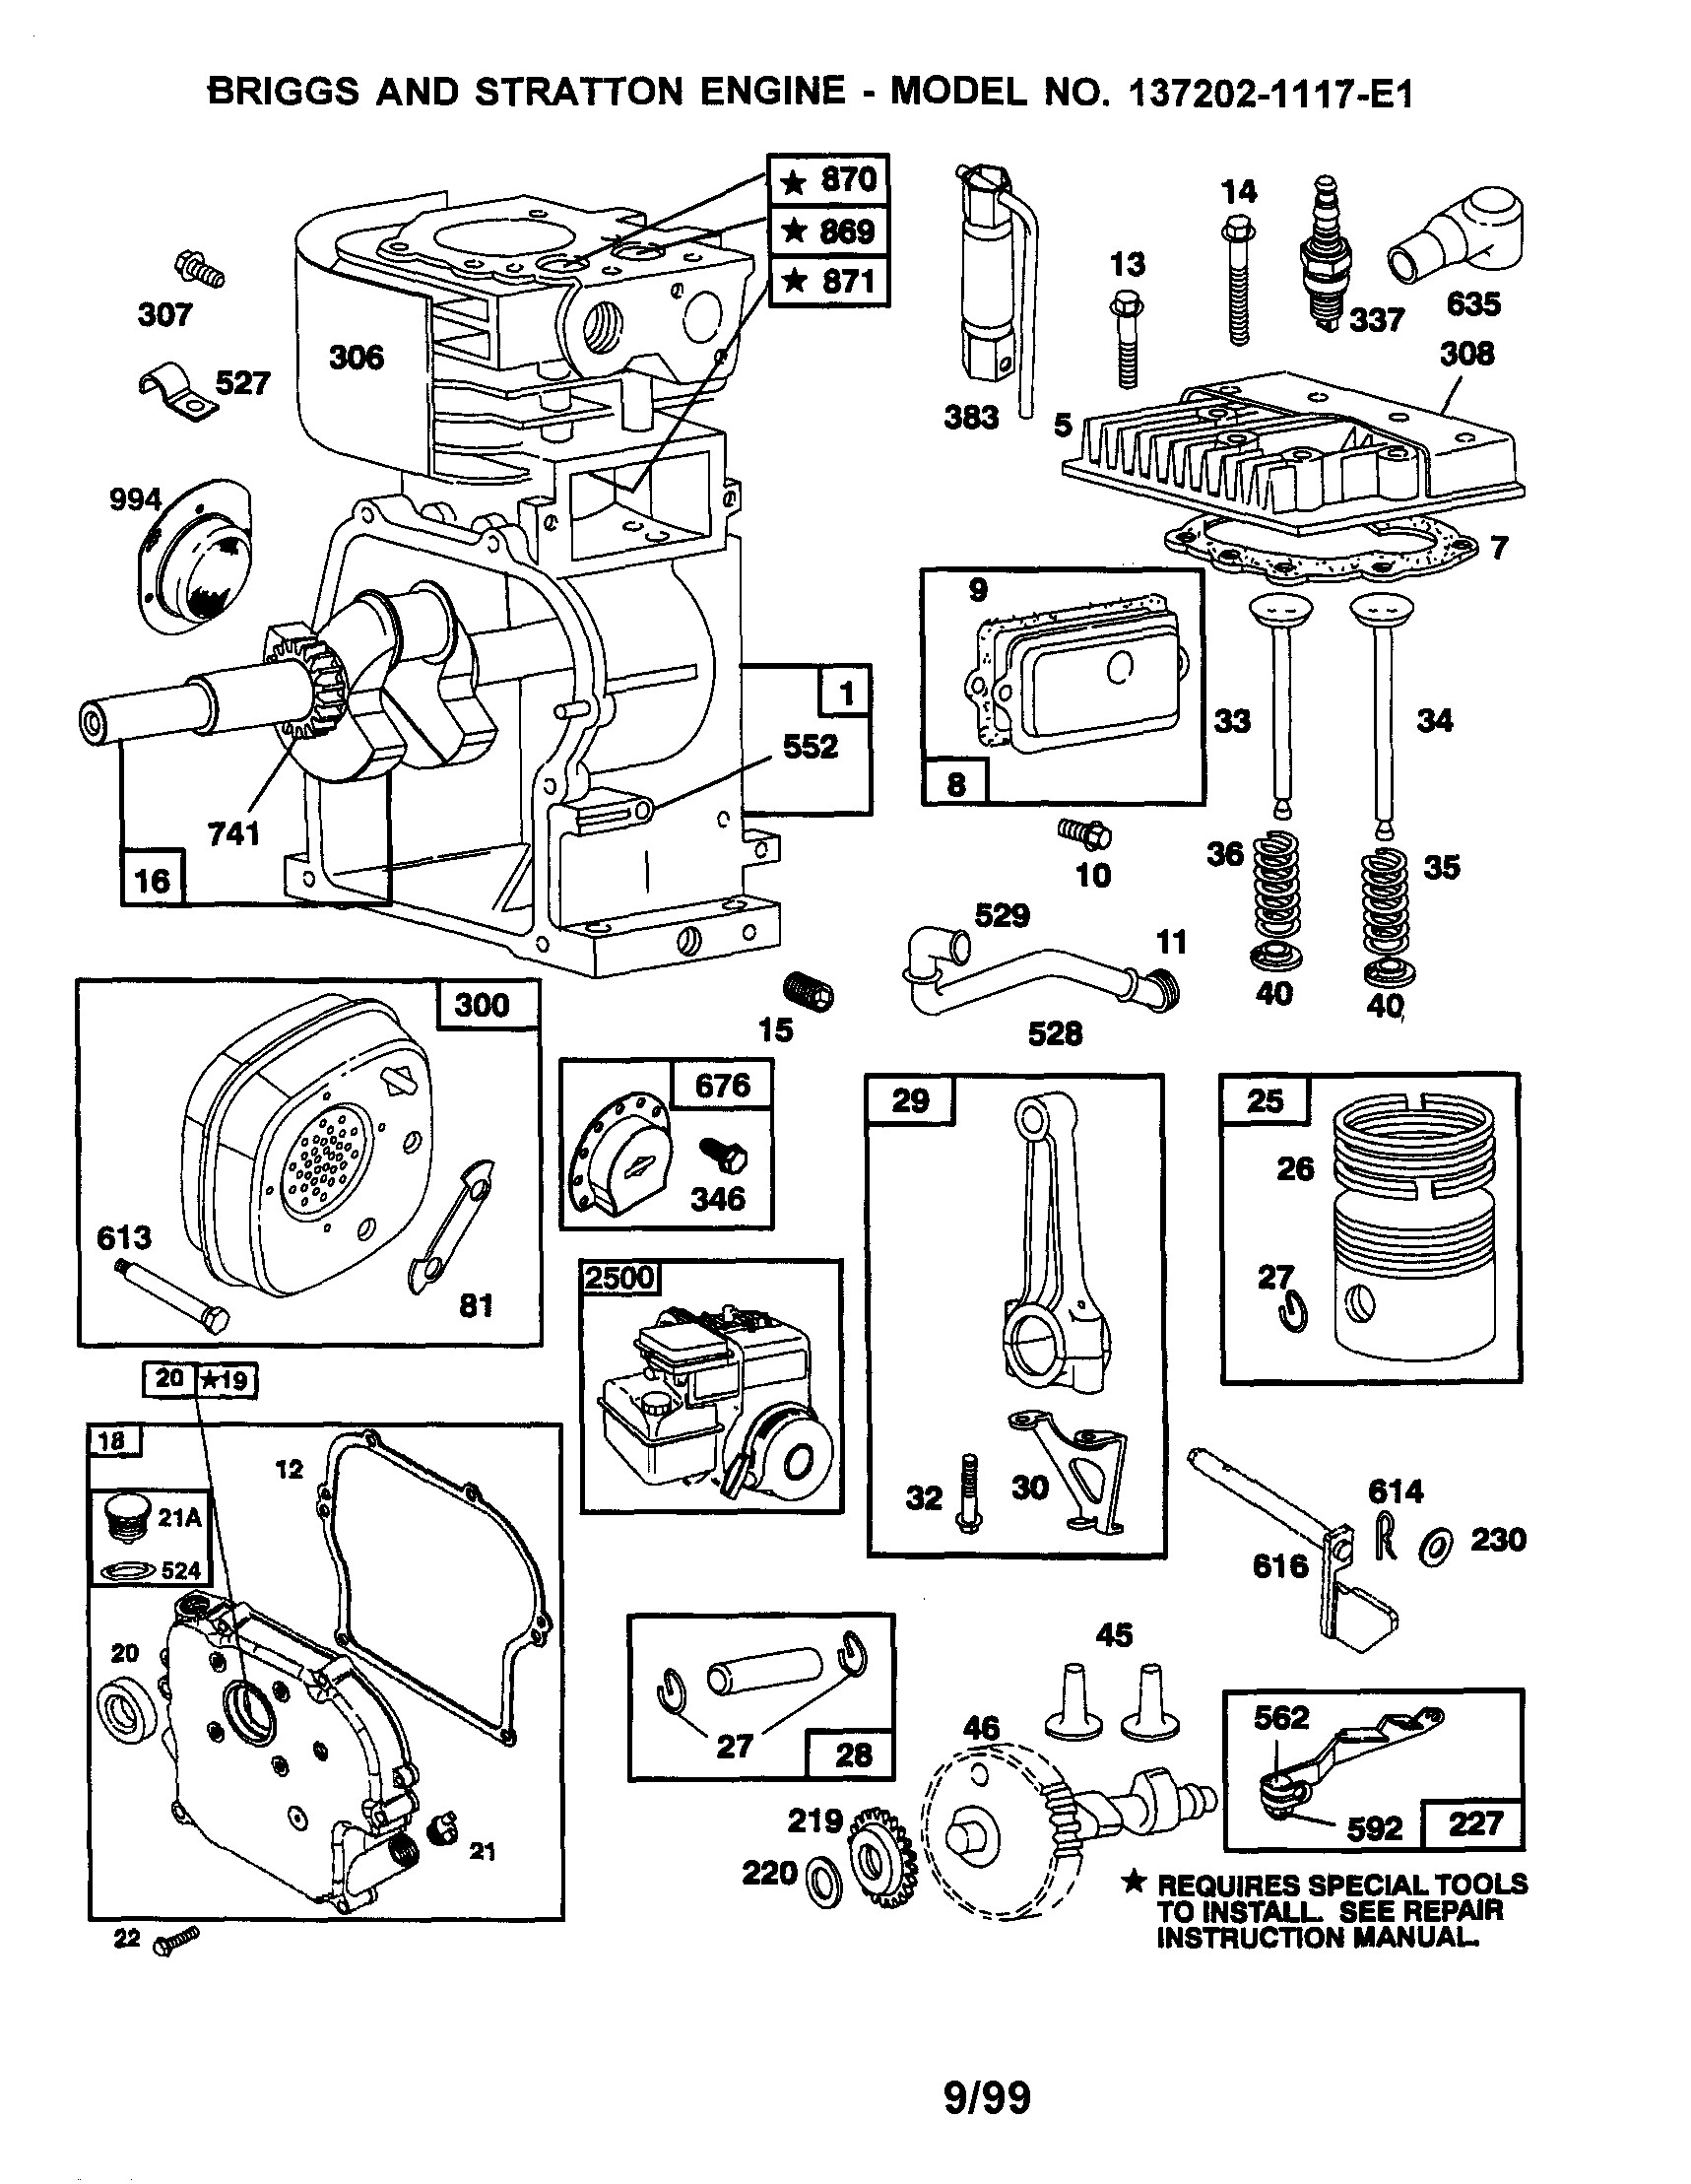 5Hp Briggs And Stratton Carburetor Diagram Briggs And Stratton 4 5 Hp Engine Diagram Wiring Diagram Section